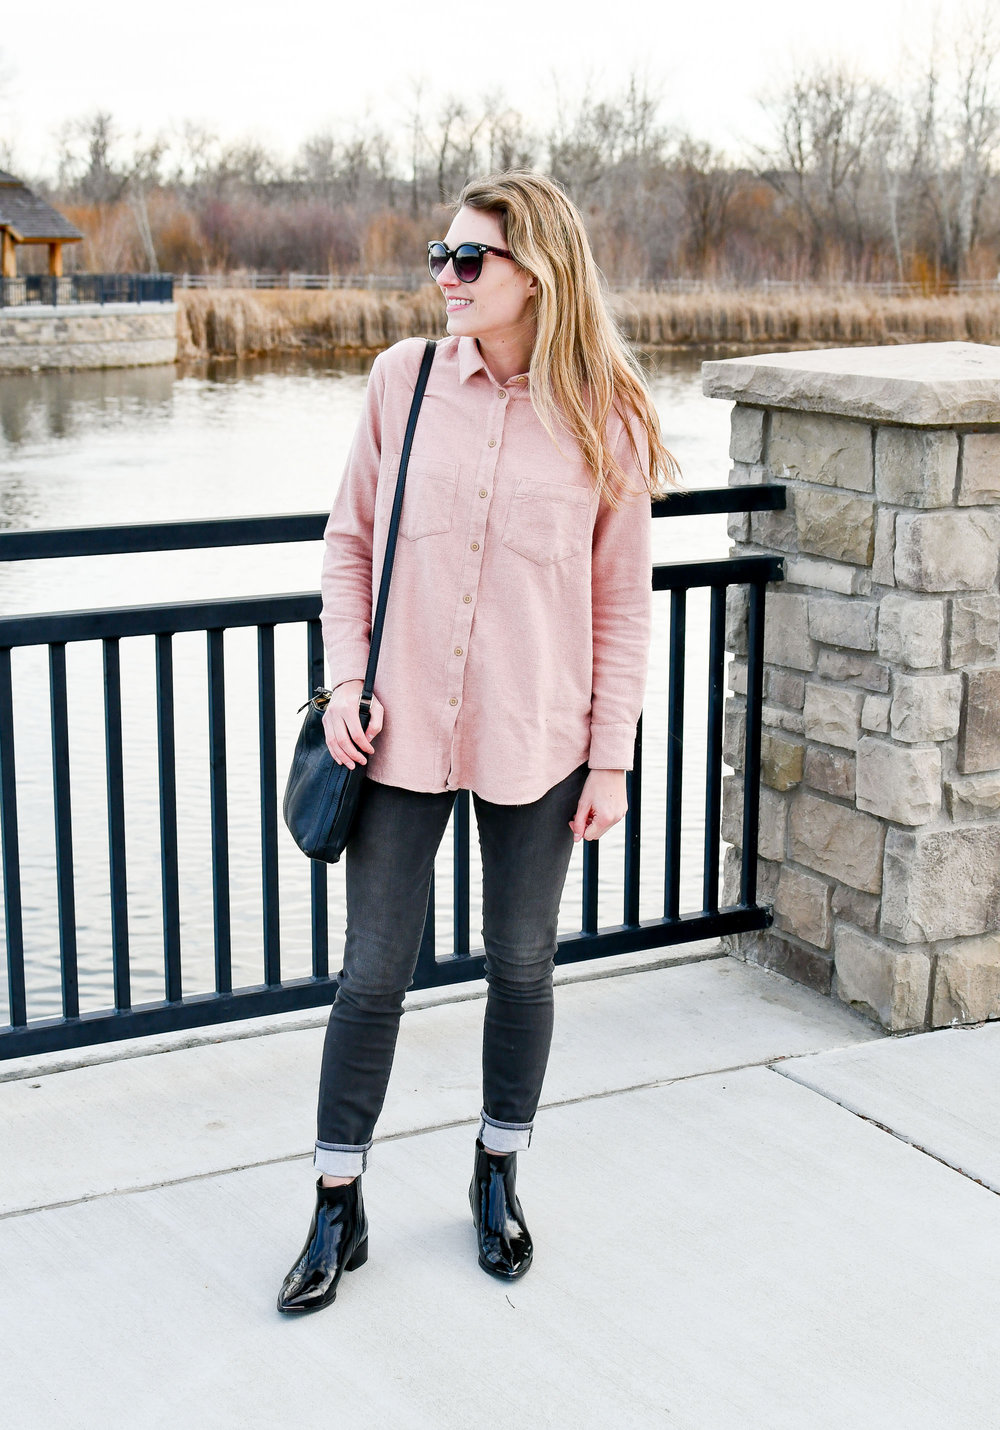 Favorite outfit: Brunch in blush — Cotton Cashmere Cat Hair